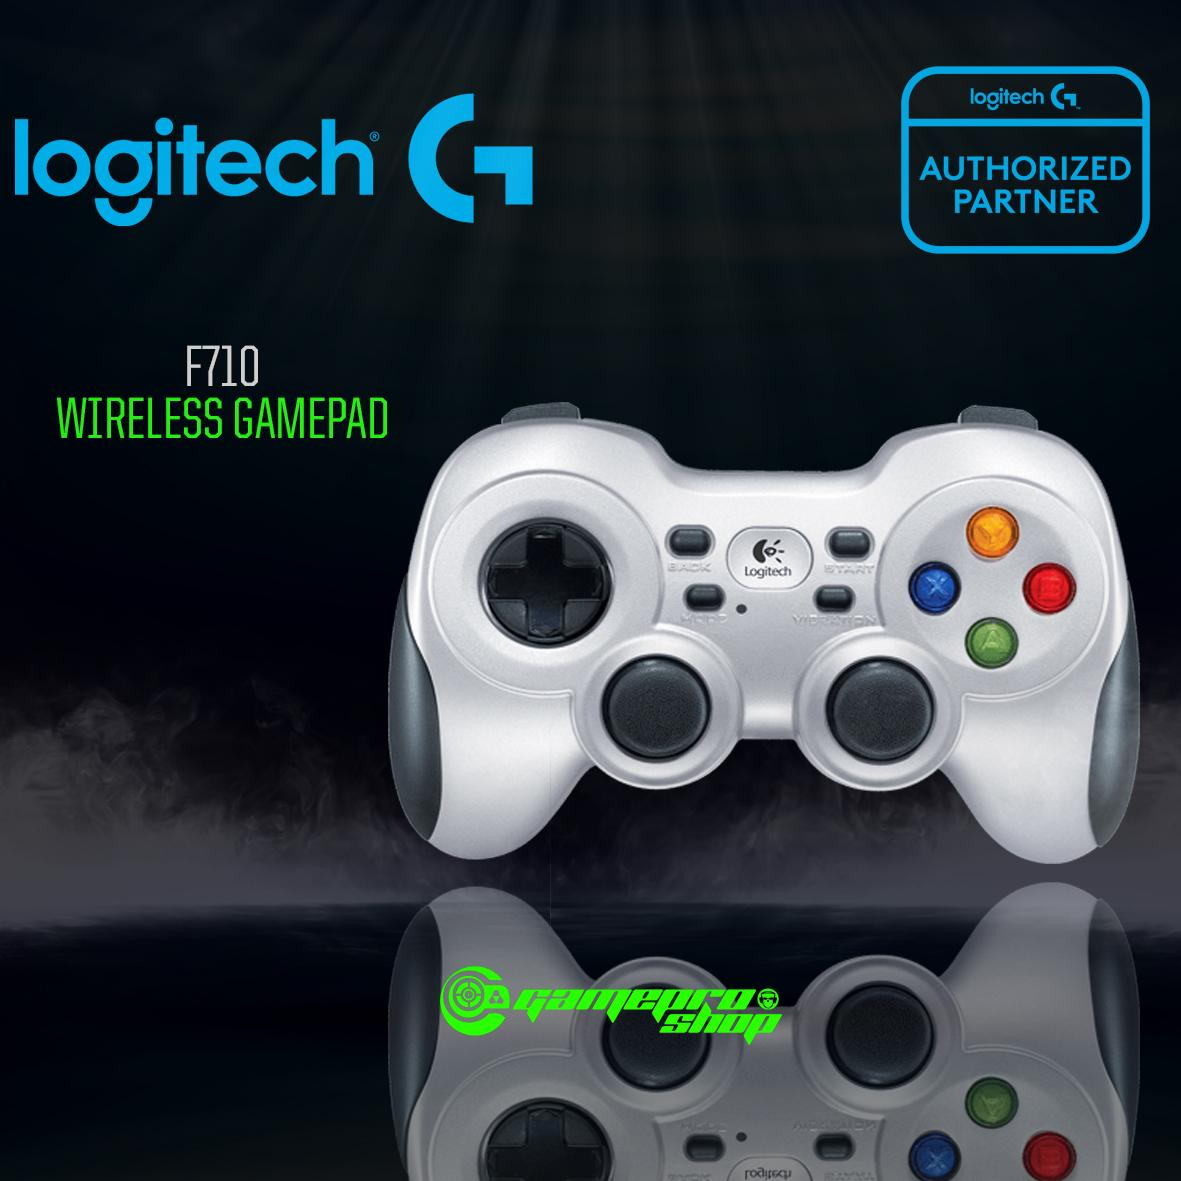 Logitech F710 Wireless Gamepad Gaming Controller *11.11 PROMO*